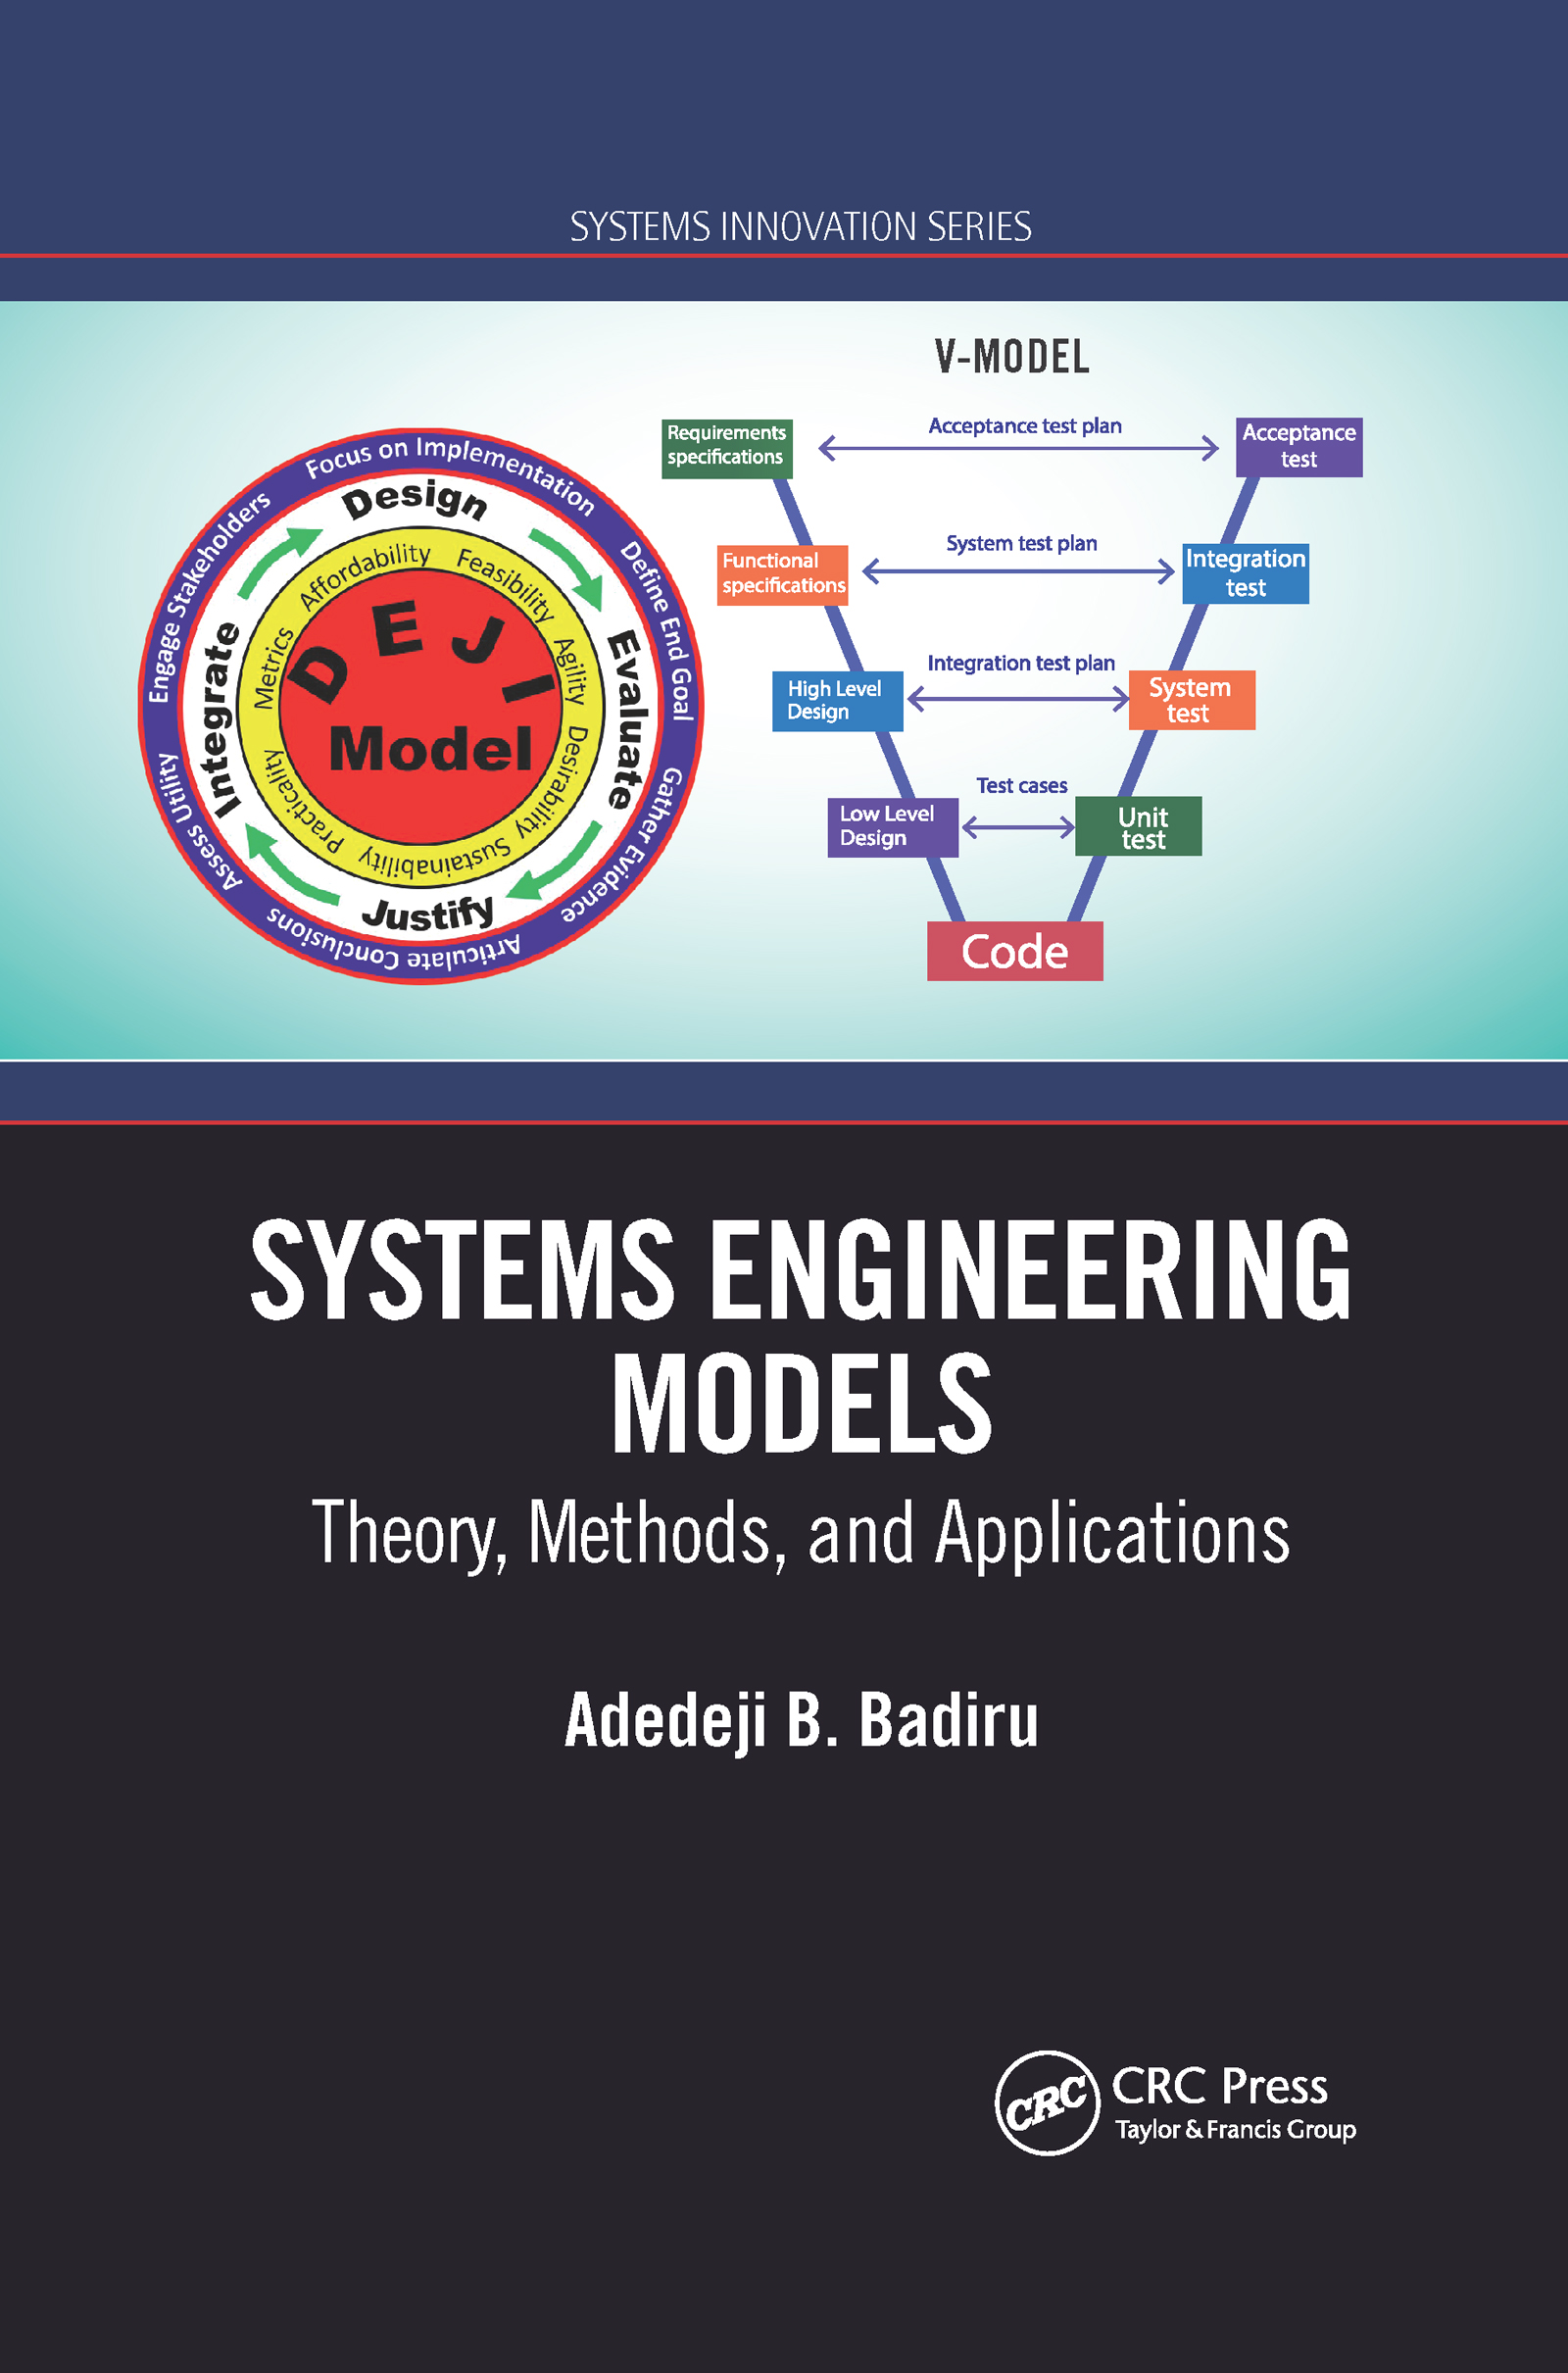 Systems Engineering Models